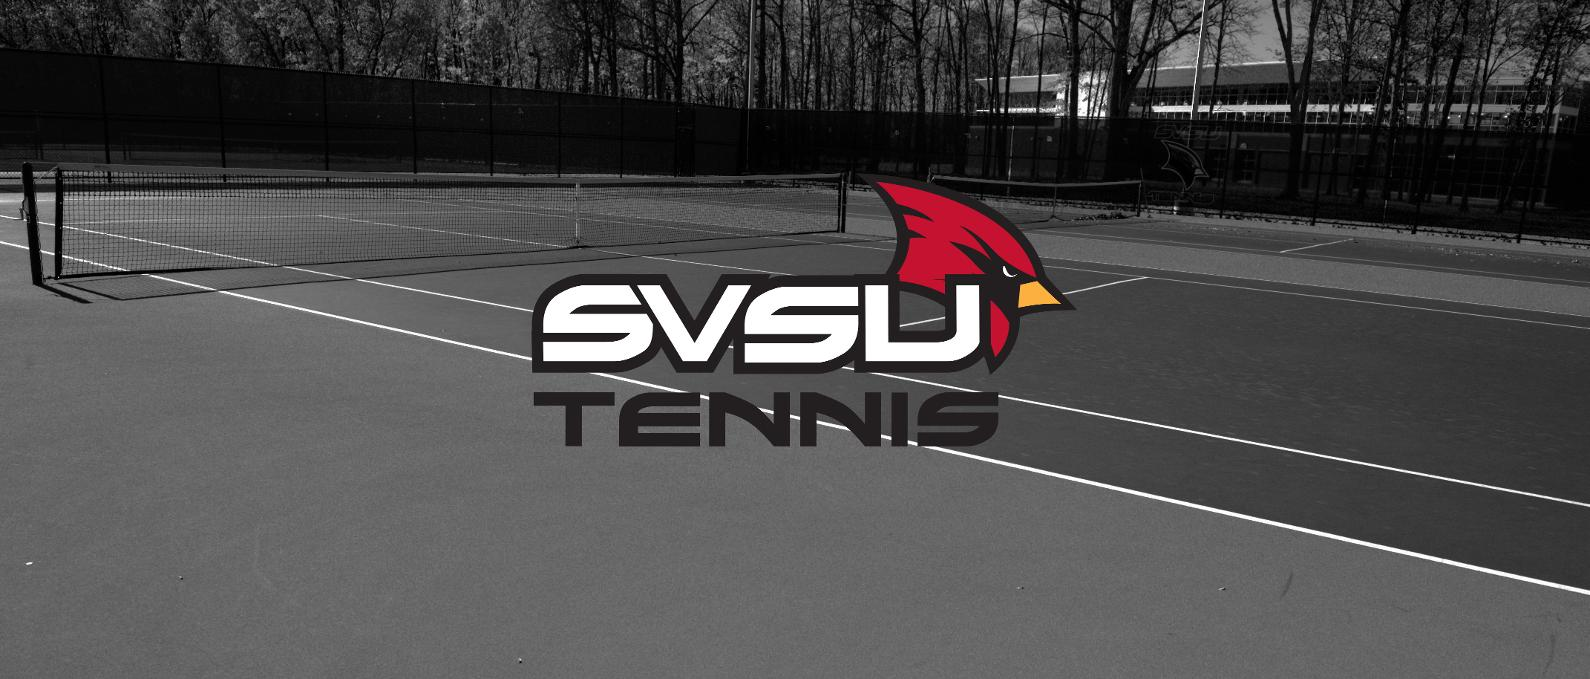 SVSU Women's Tennis Inks Five Recruits During Early Signing Period